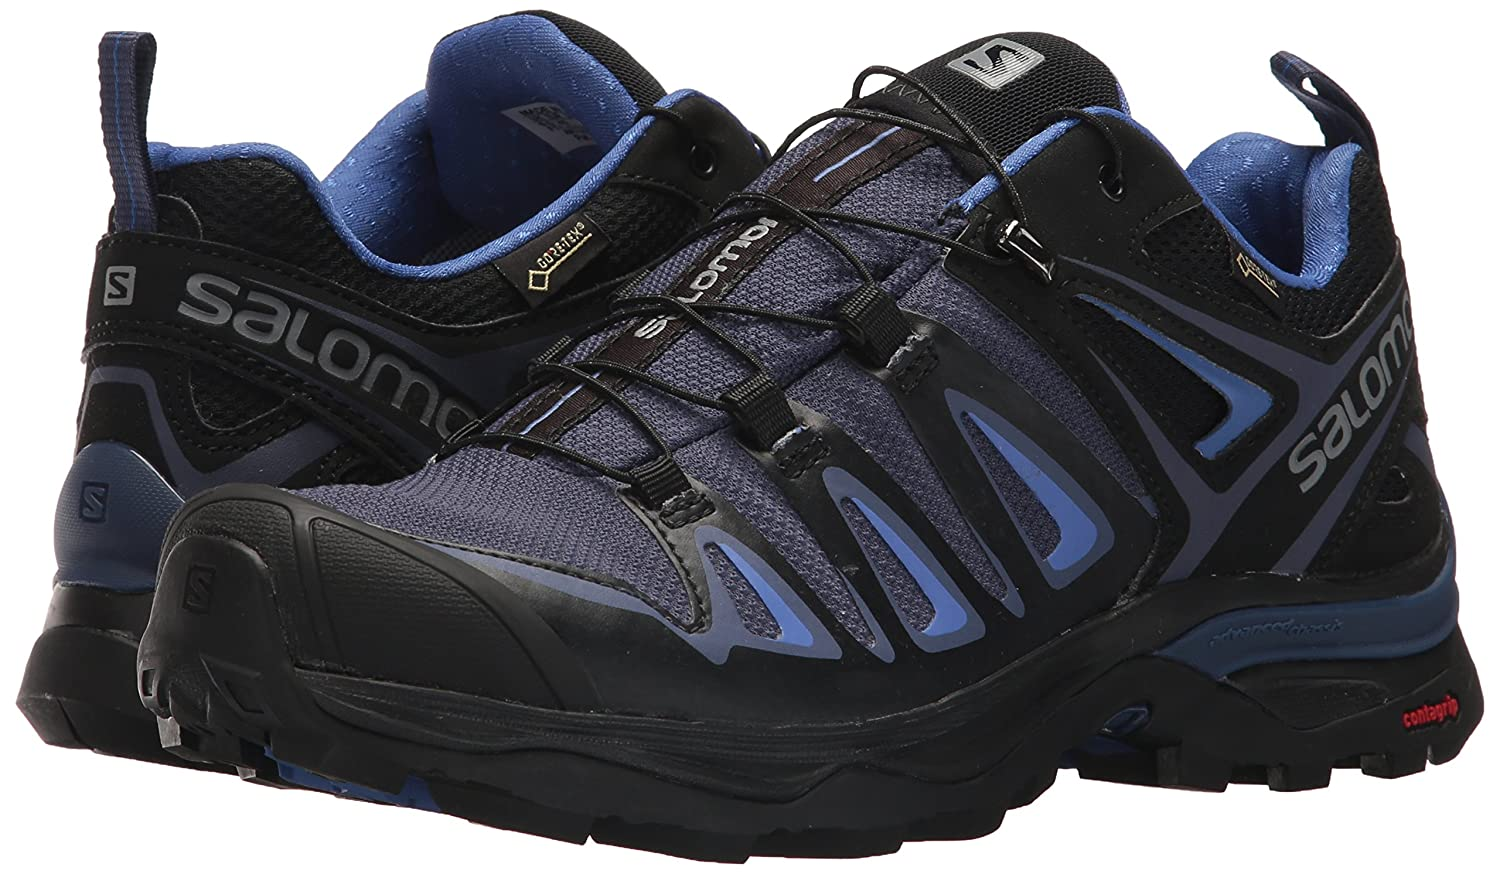 Salomon Women's X Shoes Ultra 3 GTX Hiking Shoes X B072LR1SF4 8.5 B(M) US|Crown Blue e97f79